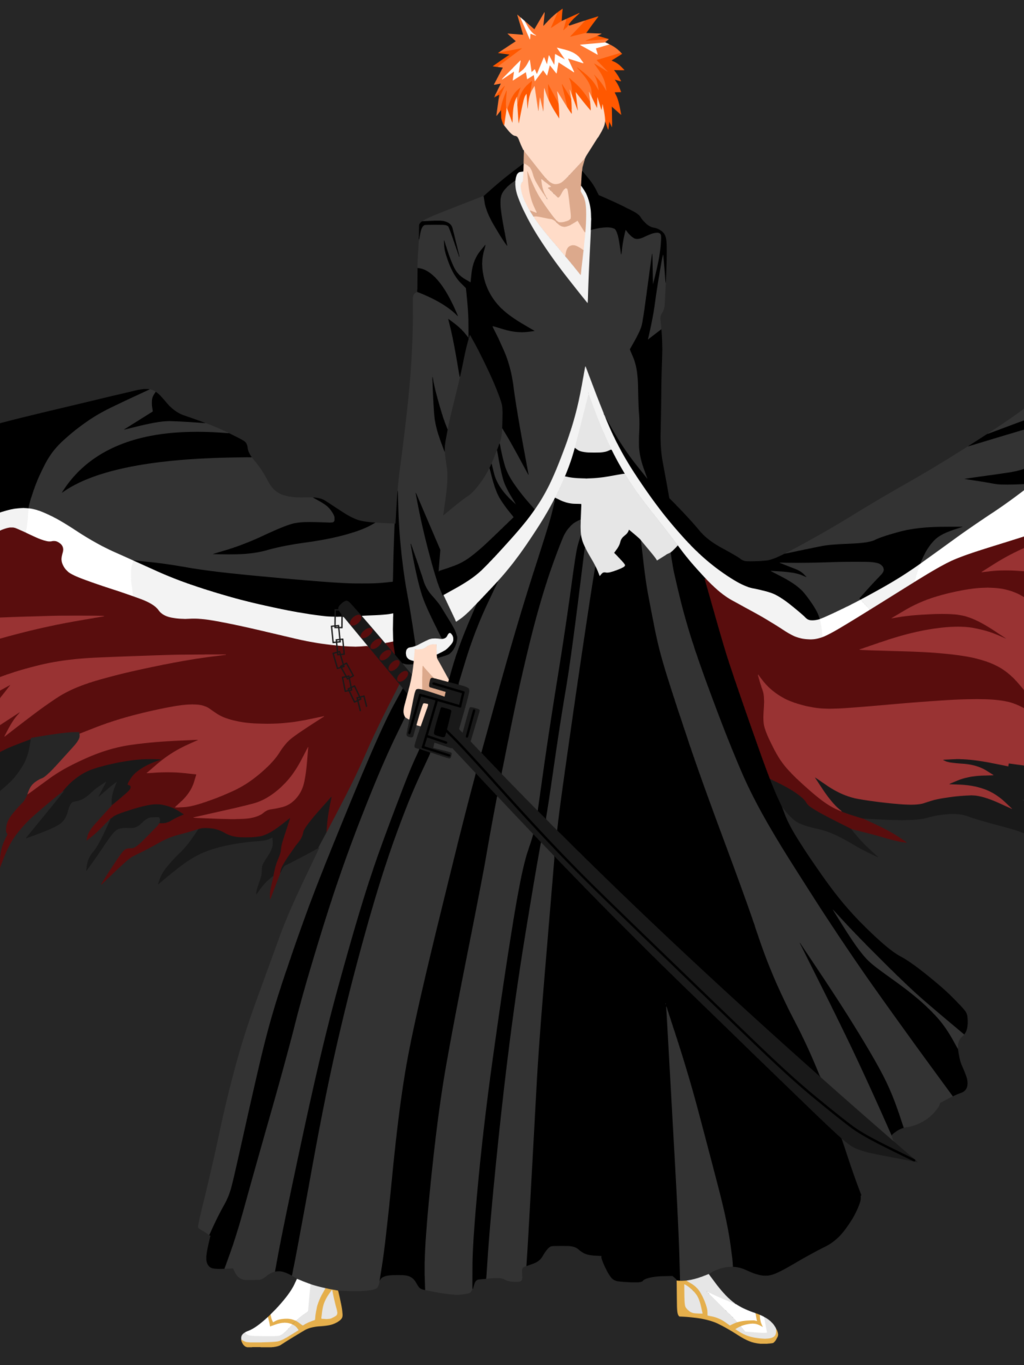 Bleach Characters Cartoon Background for Phone